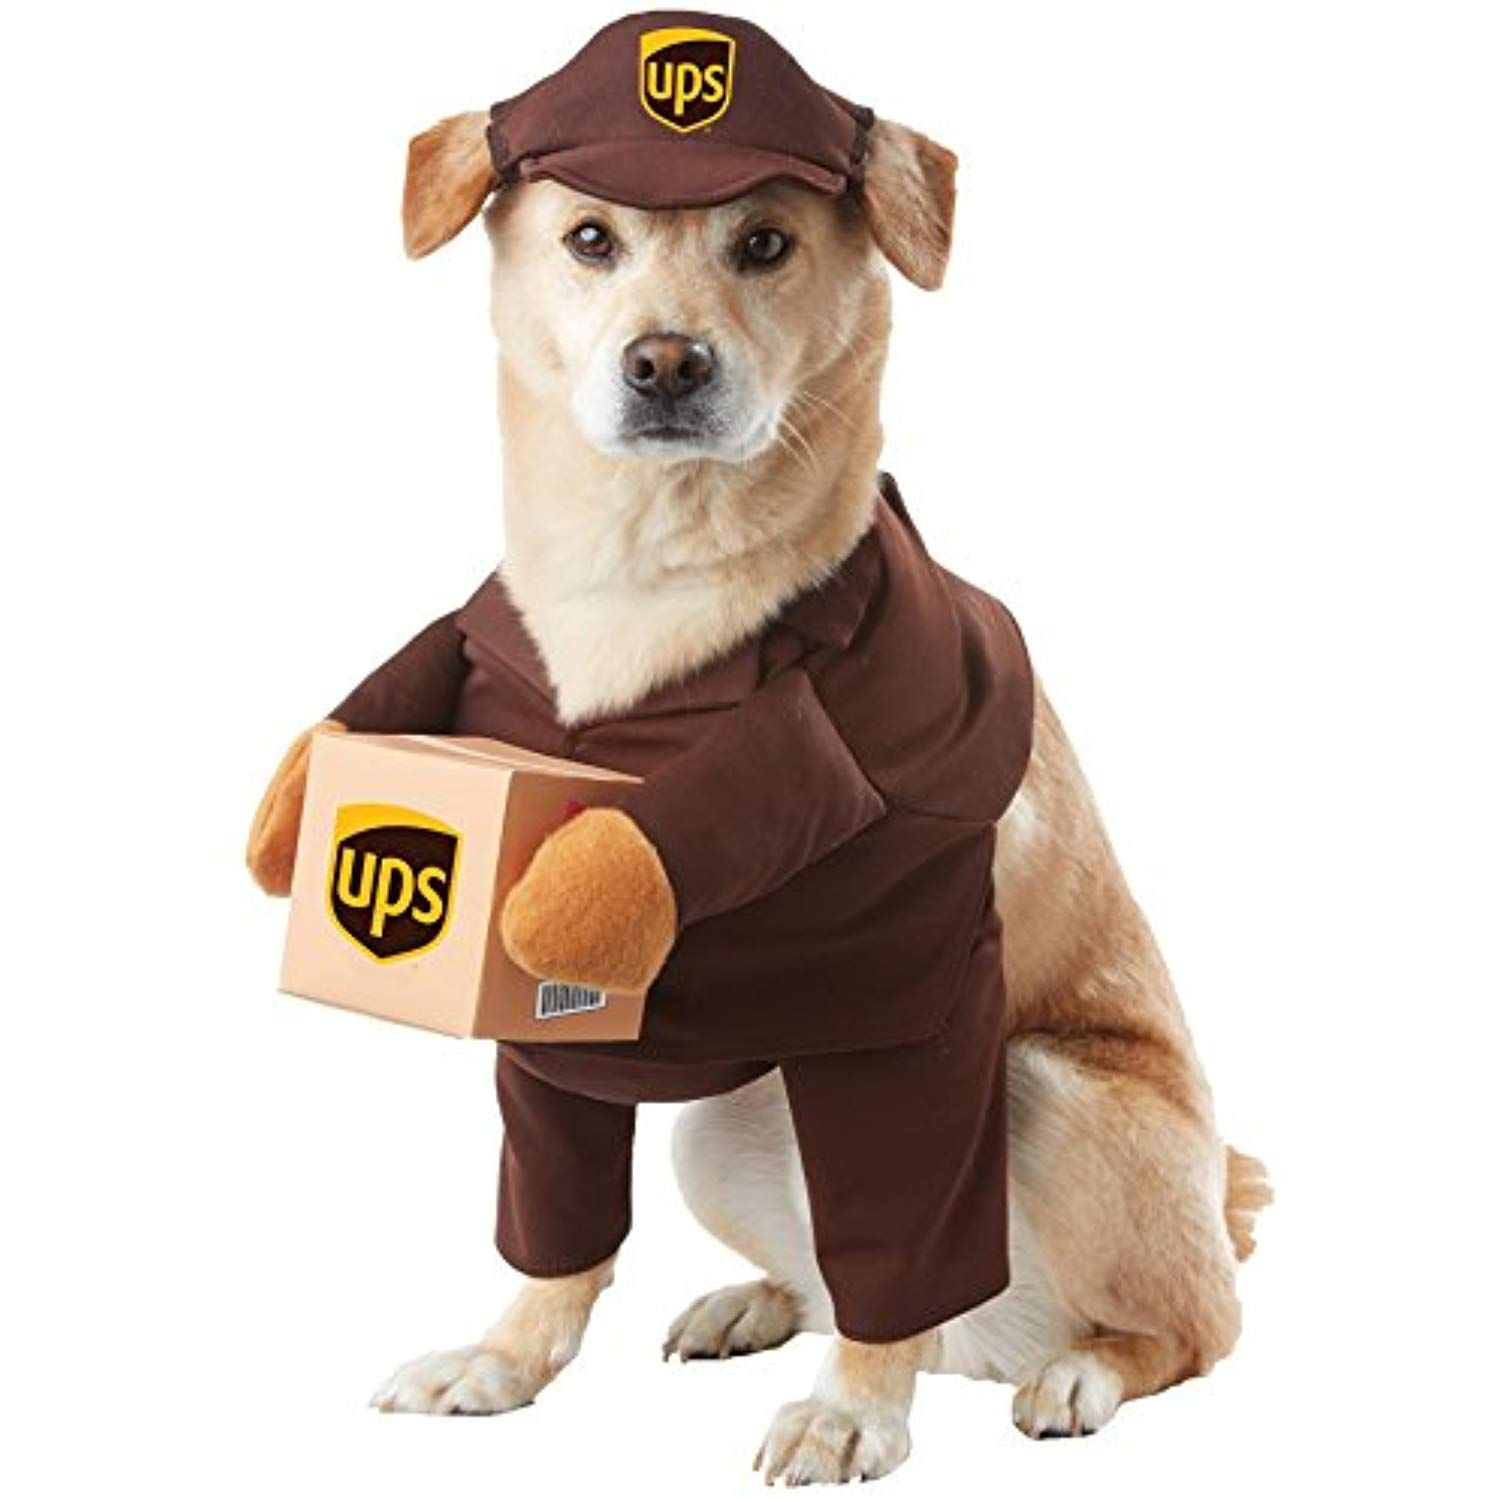 Uhc Ups Pal Outfit Funny Theme Puppy Fancy Dress Halloween Pet Dog